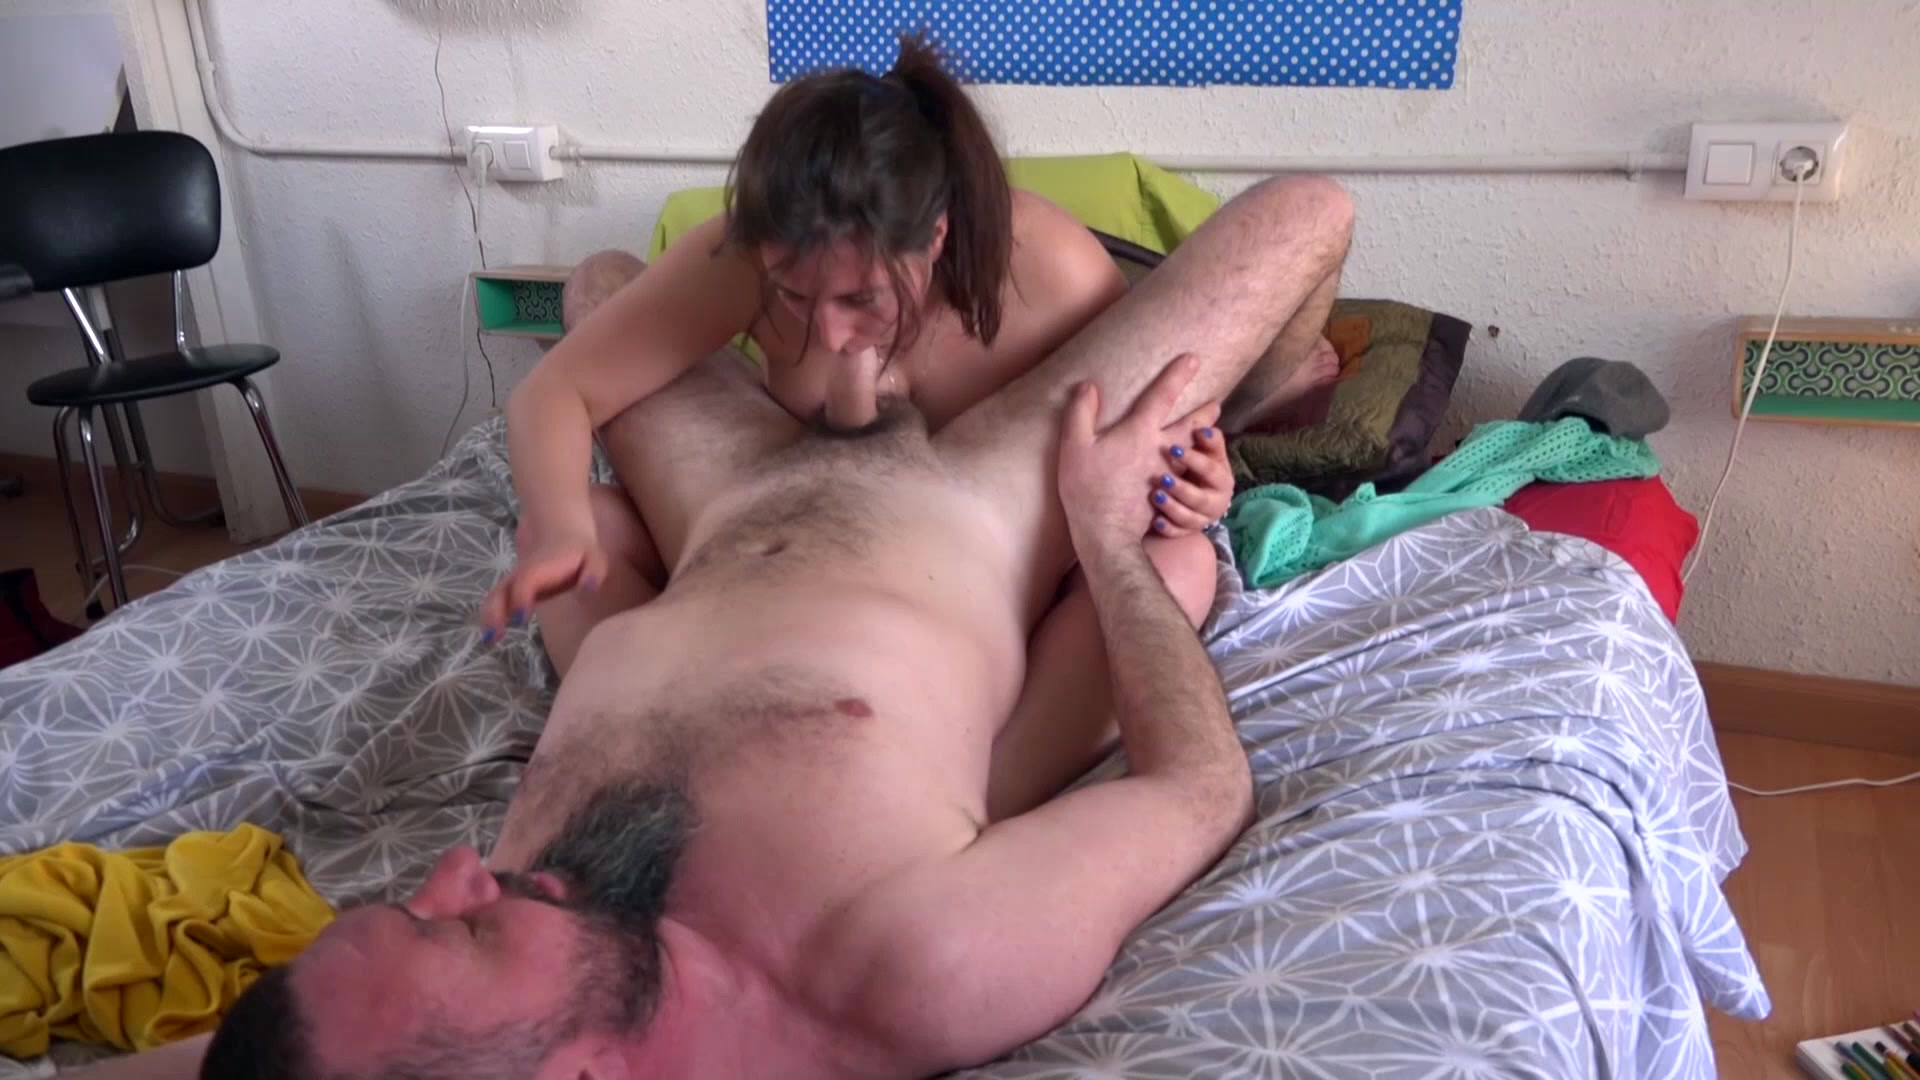 GIRLS AND THEIR BOYS 42